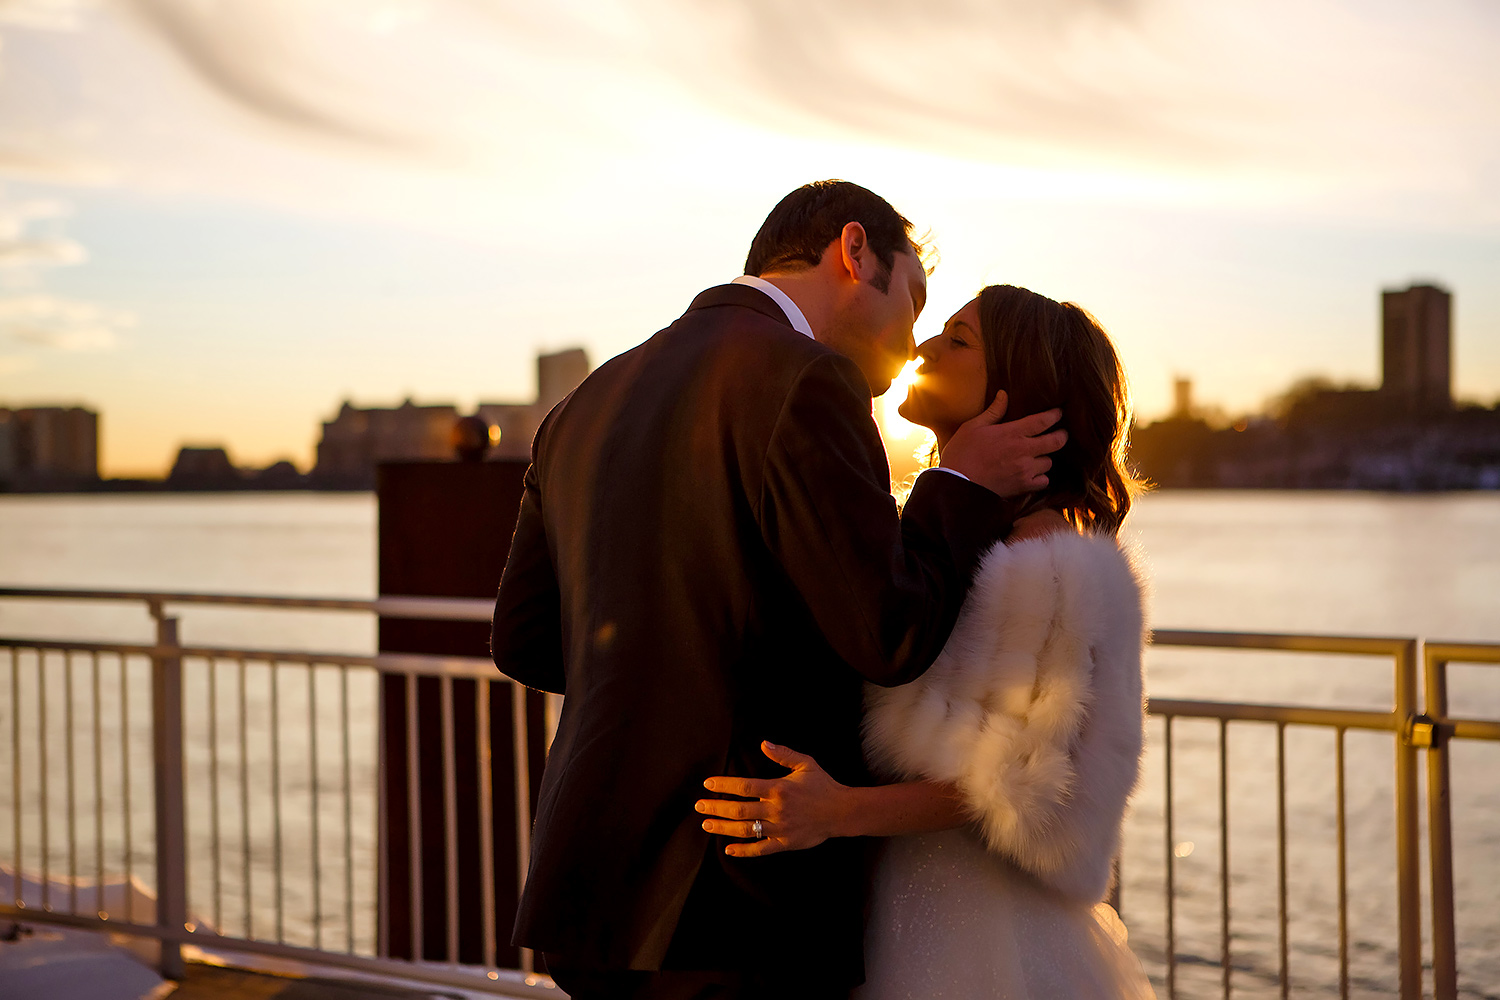 Casey and Ashley kiss at Chelsea Piers during the sunset